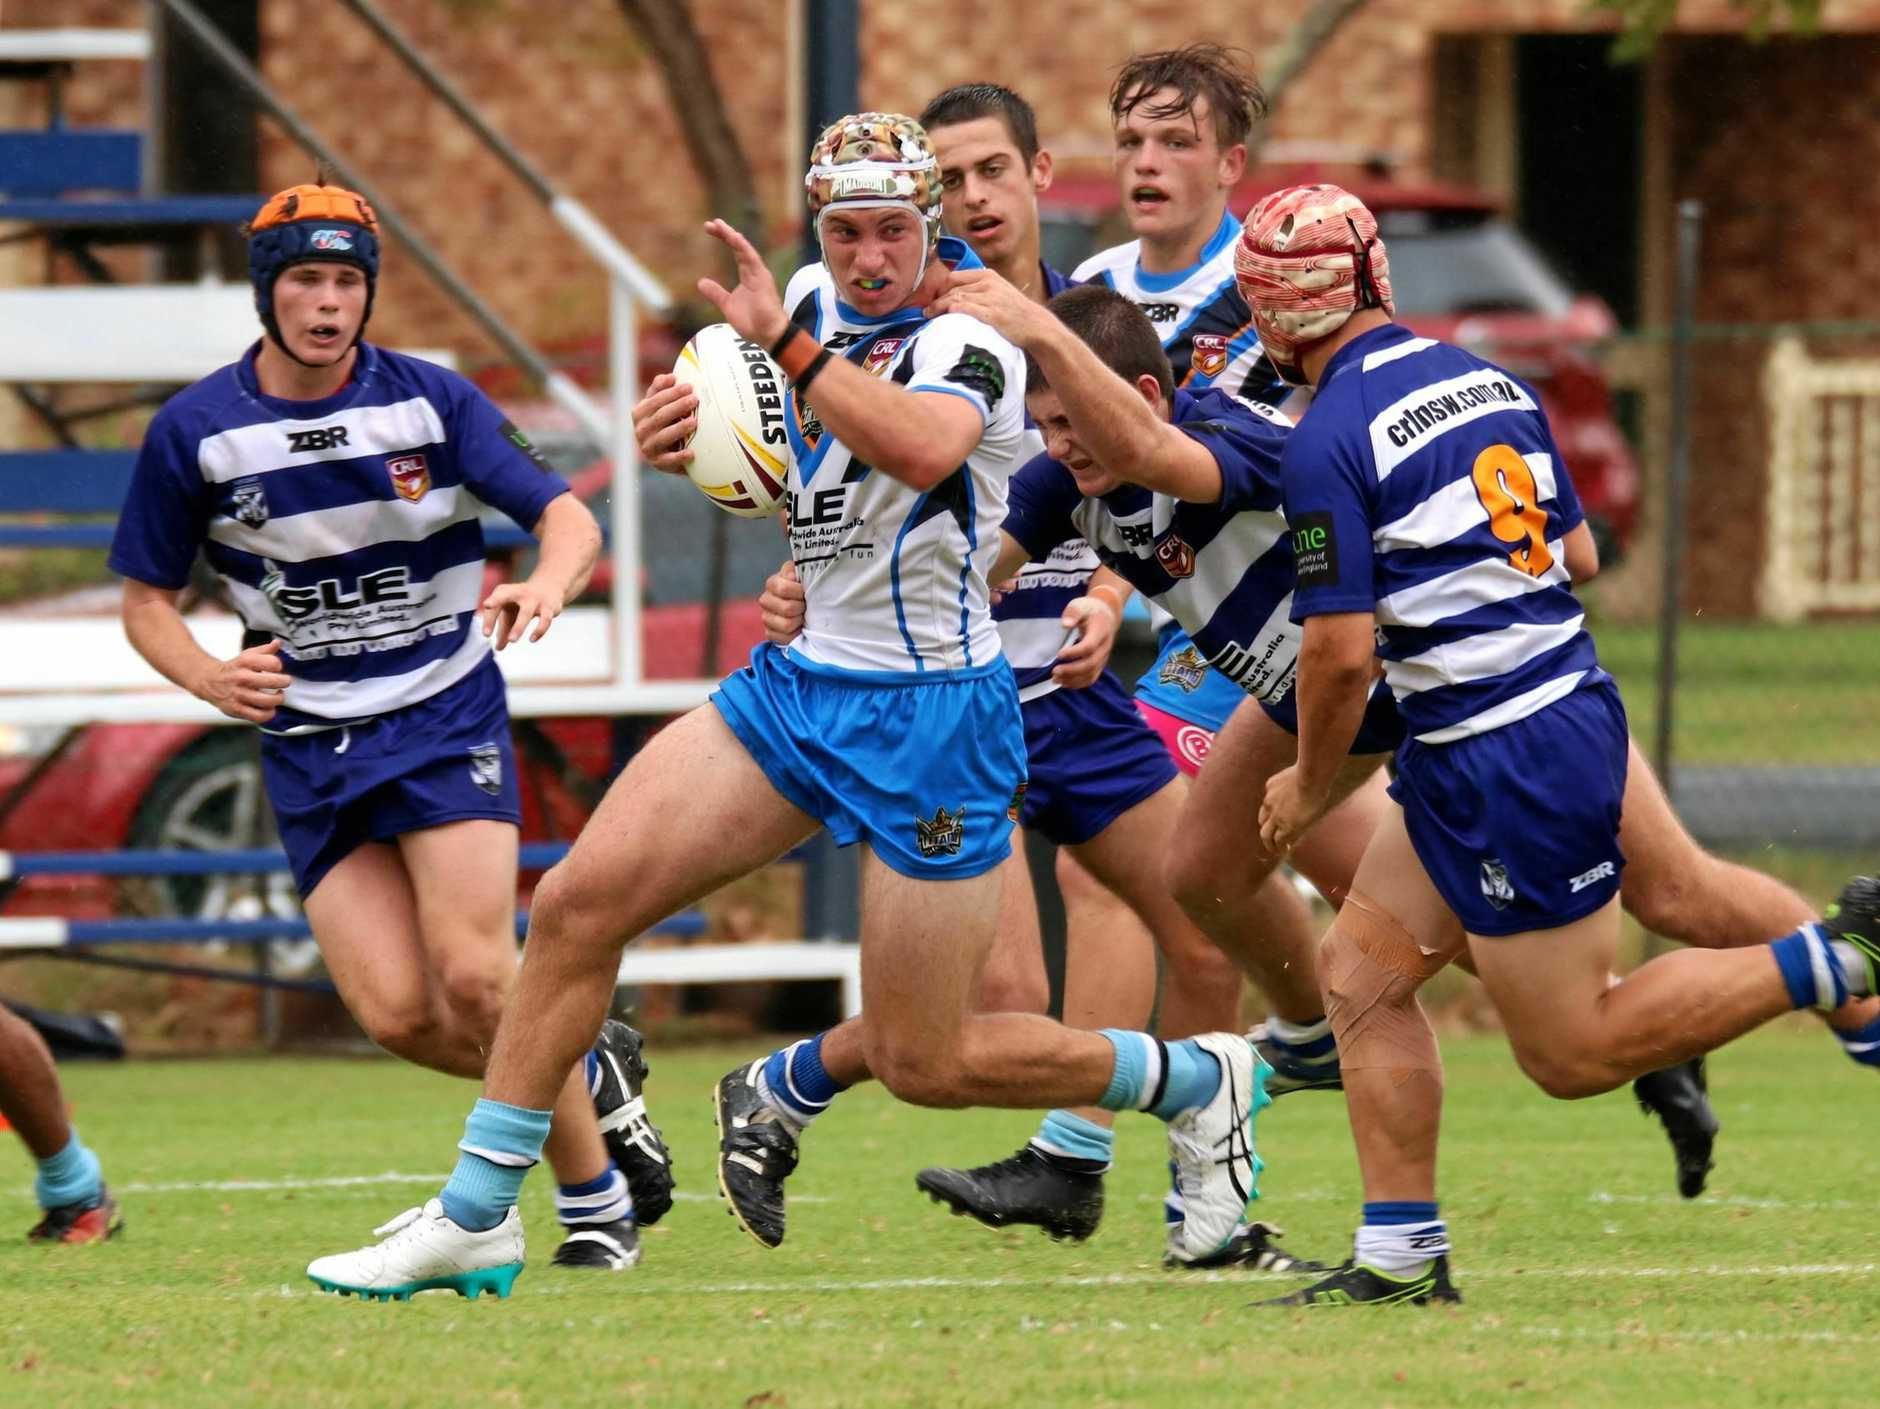 ON THE BURST: Titans five-eighth Riley Lack makes half a break during the Northern Rivers Titans and North Coast Bulldogs Andrew Johns Cup representative clash.